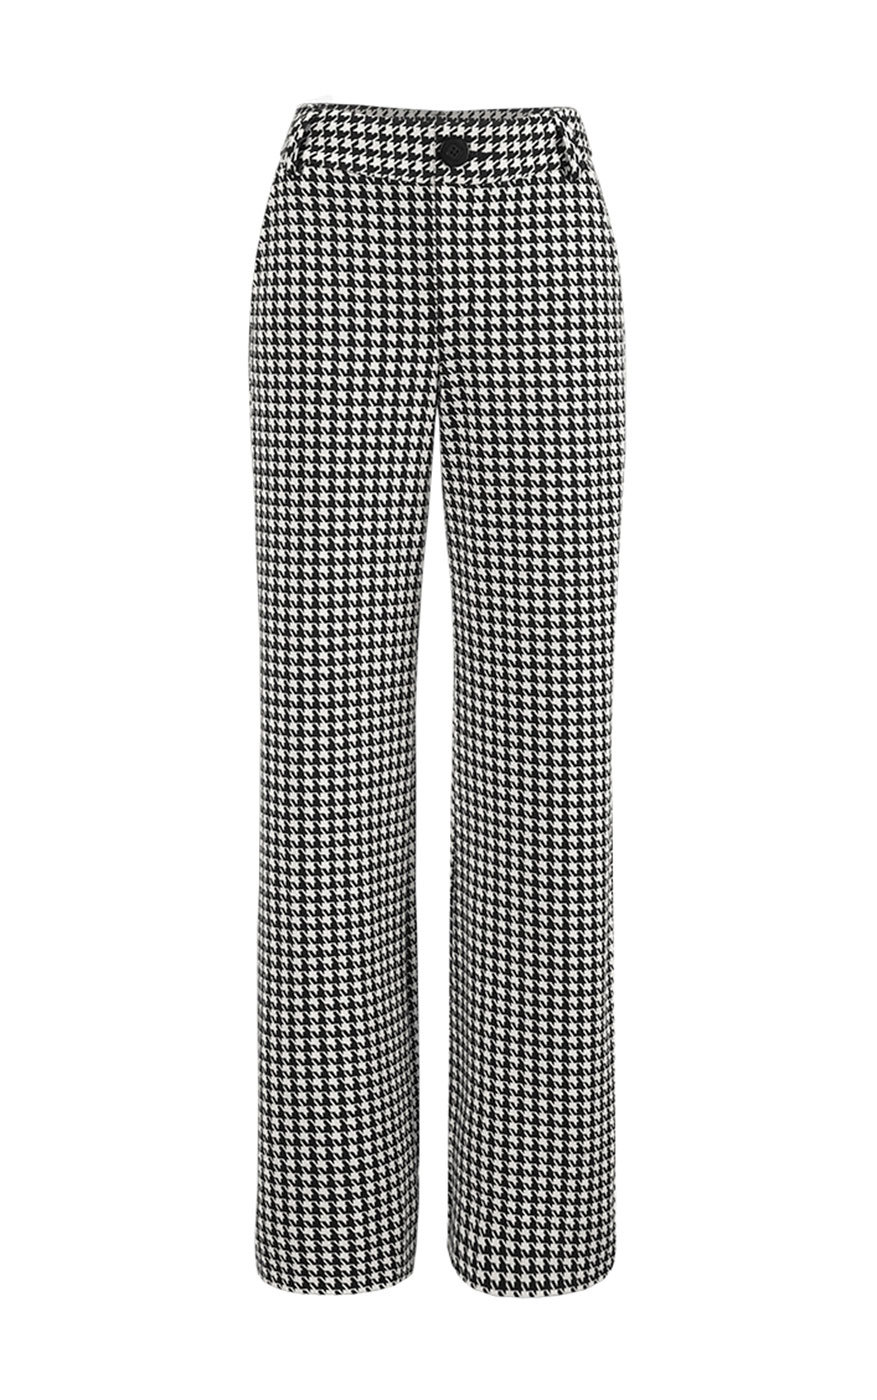 cabi's Houndstooth Trouser